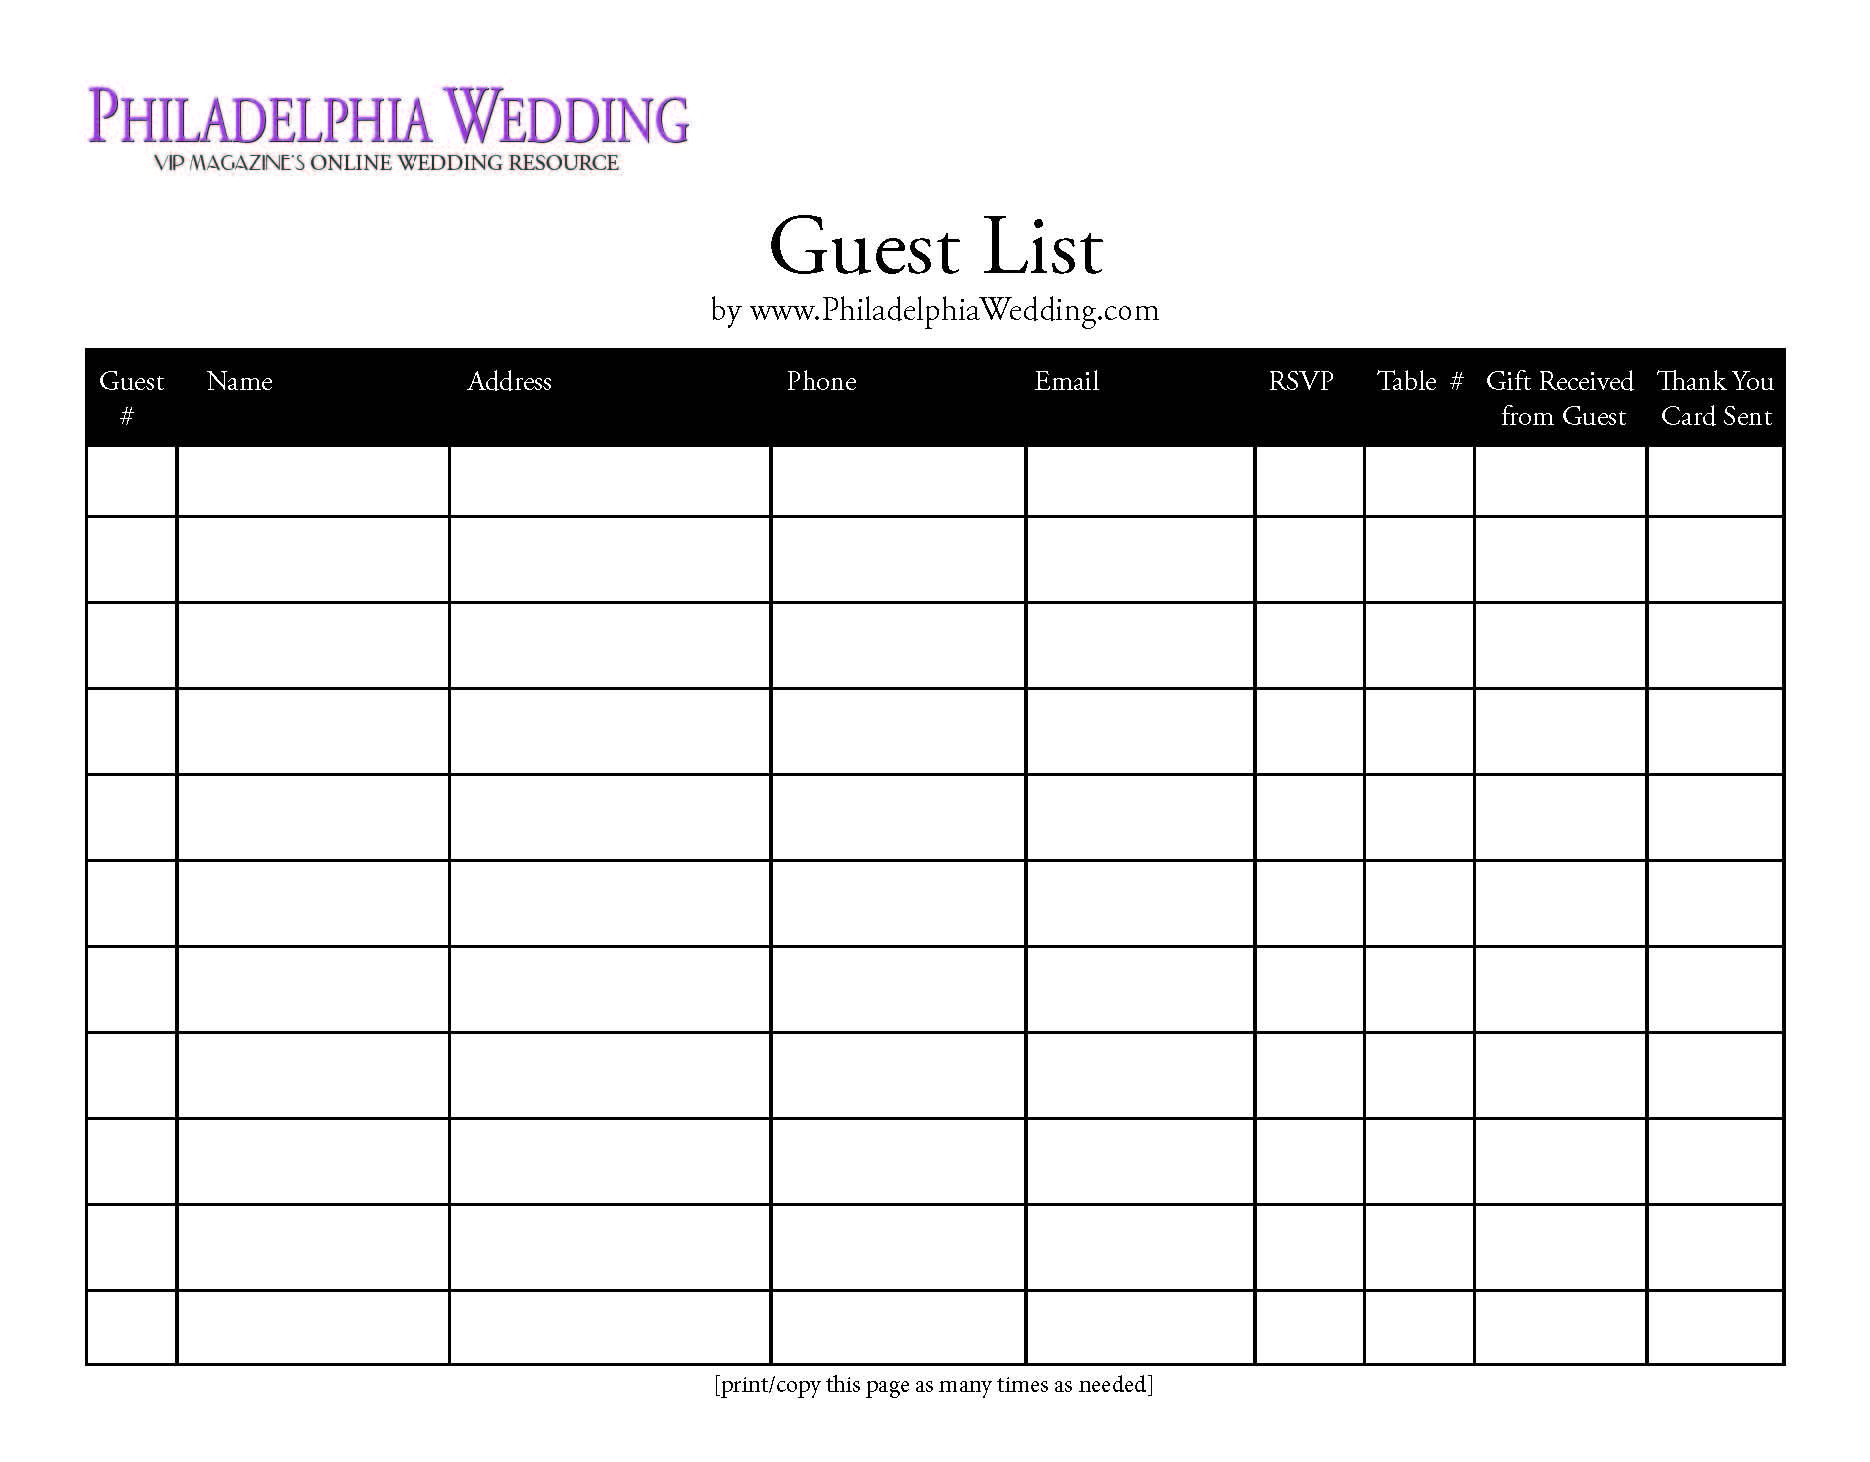 Wedding Guest List Template |  Guest List Template For Wedding